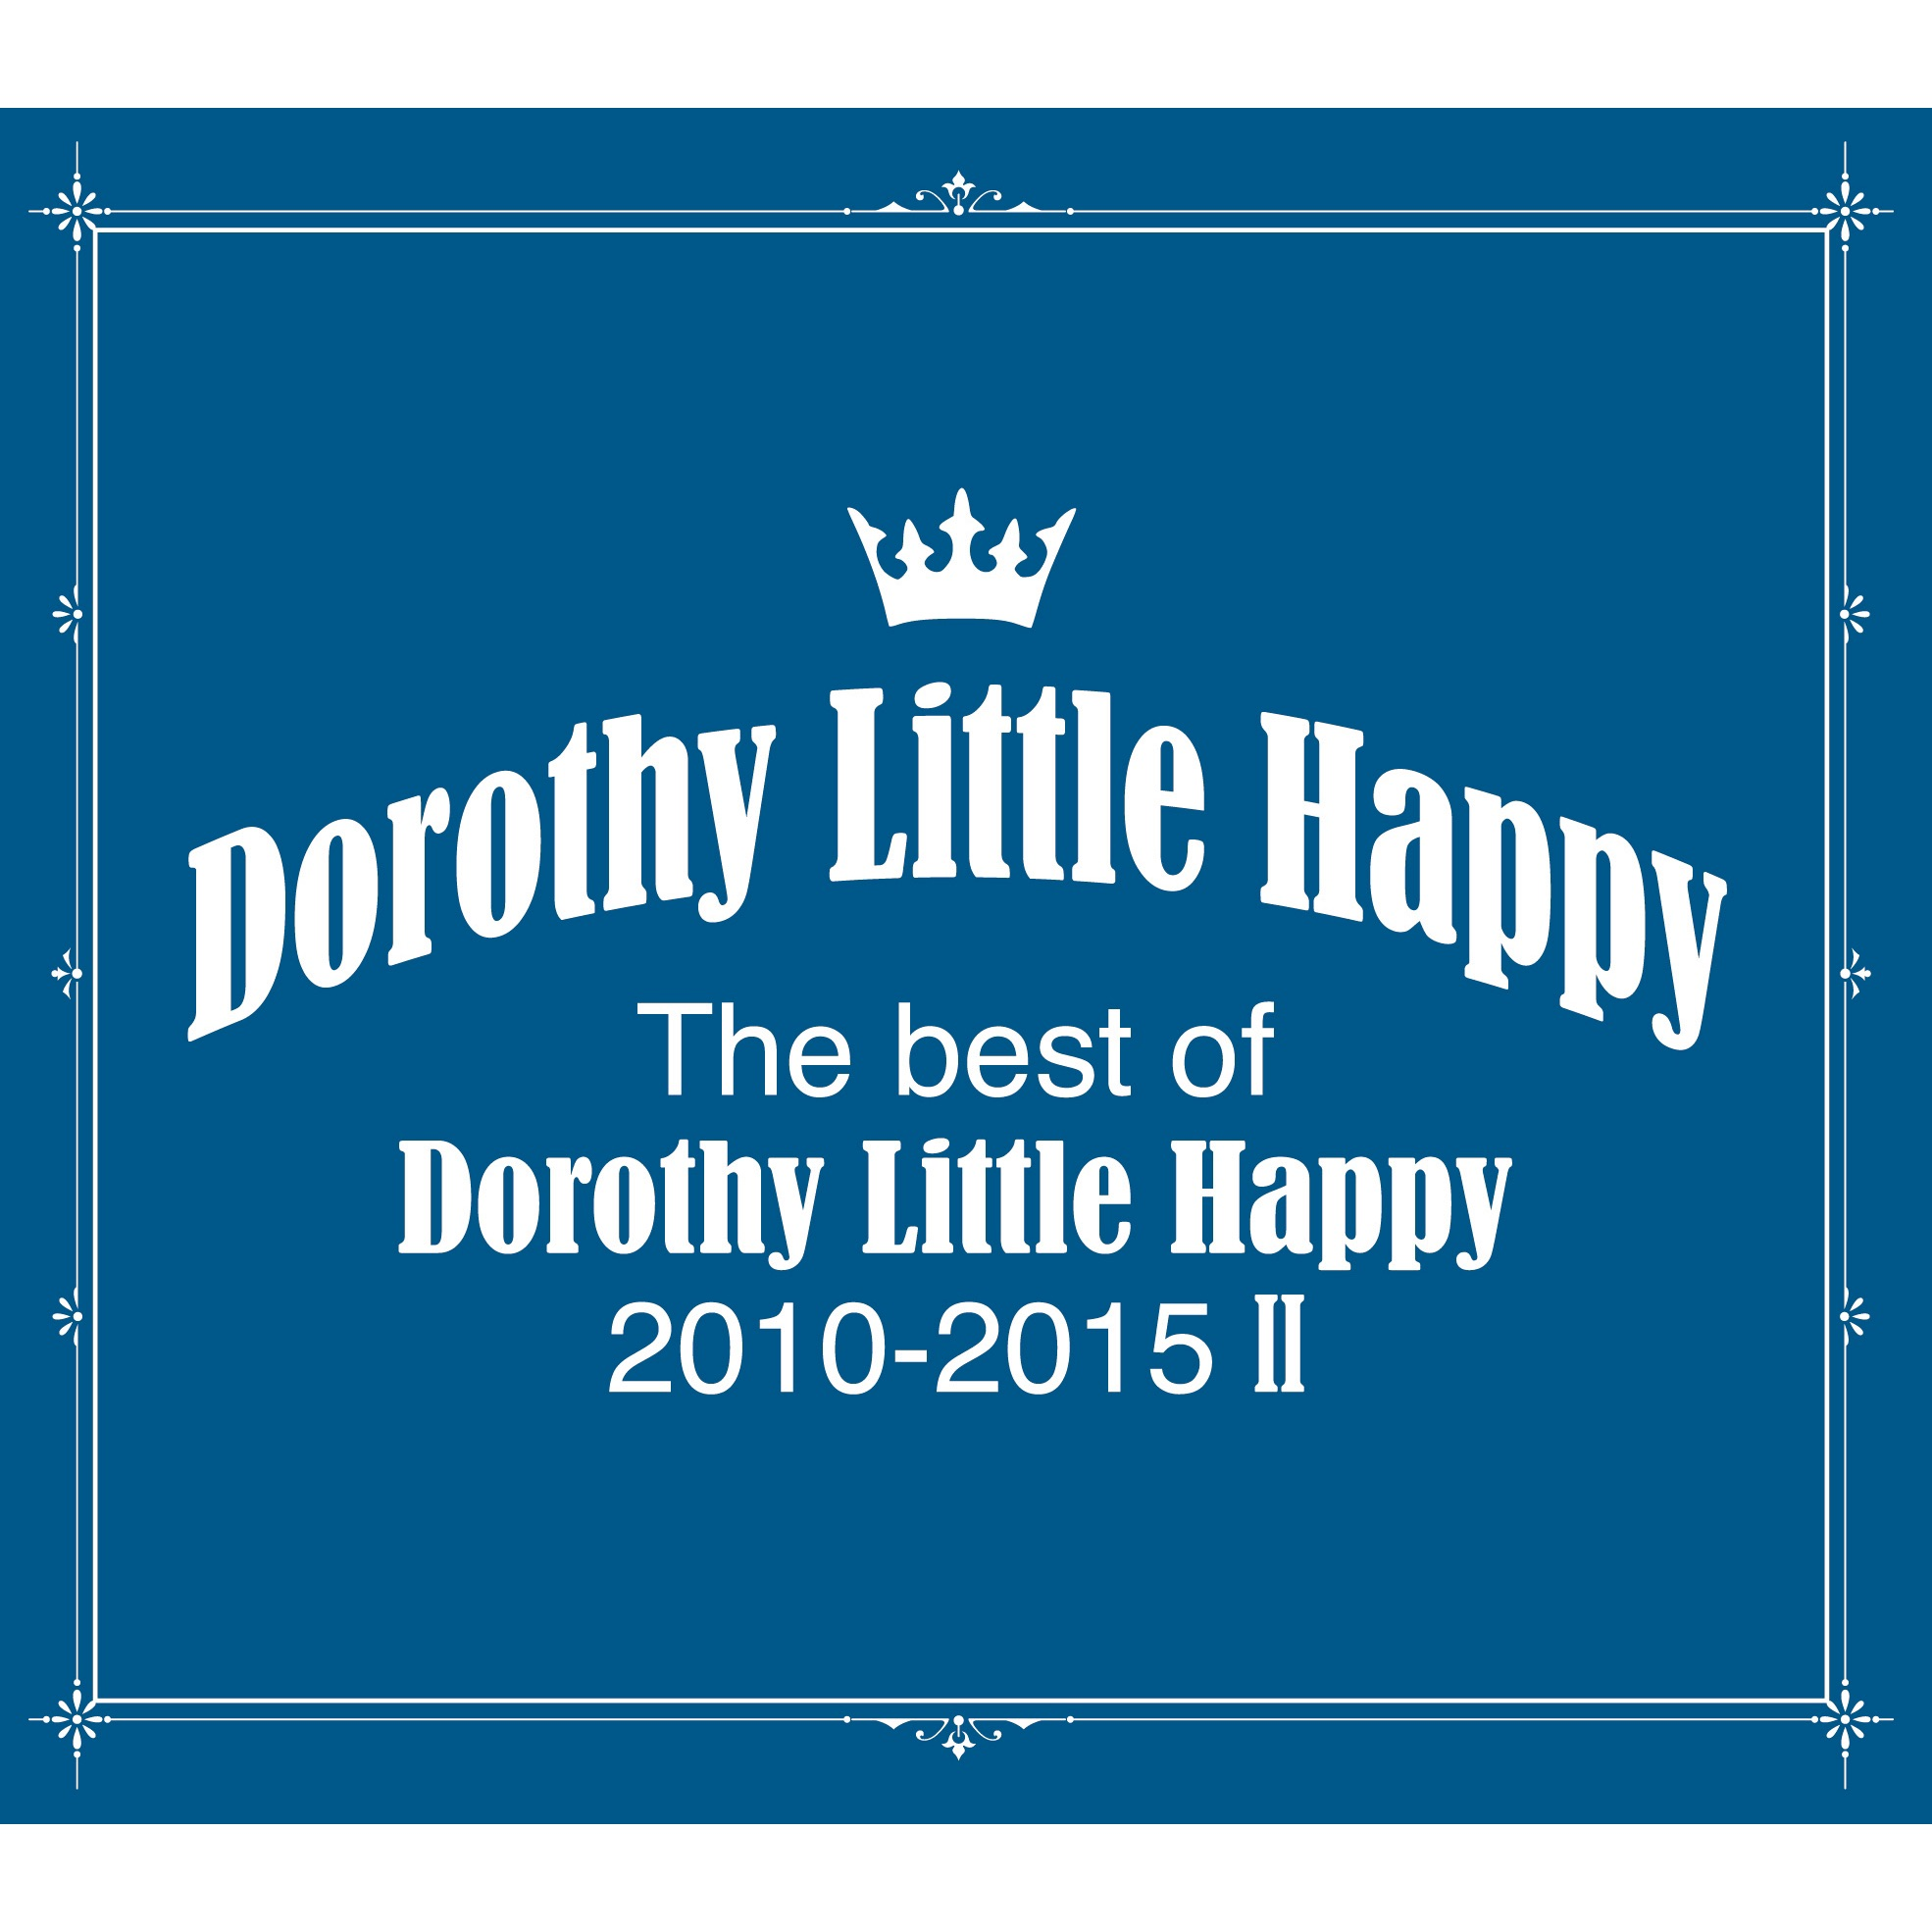 The Best of Dorothy Little Happy 2010-2015 Ⅱ